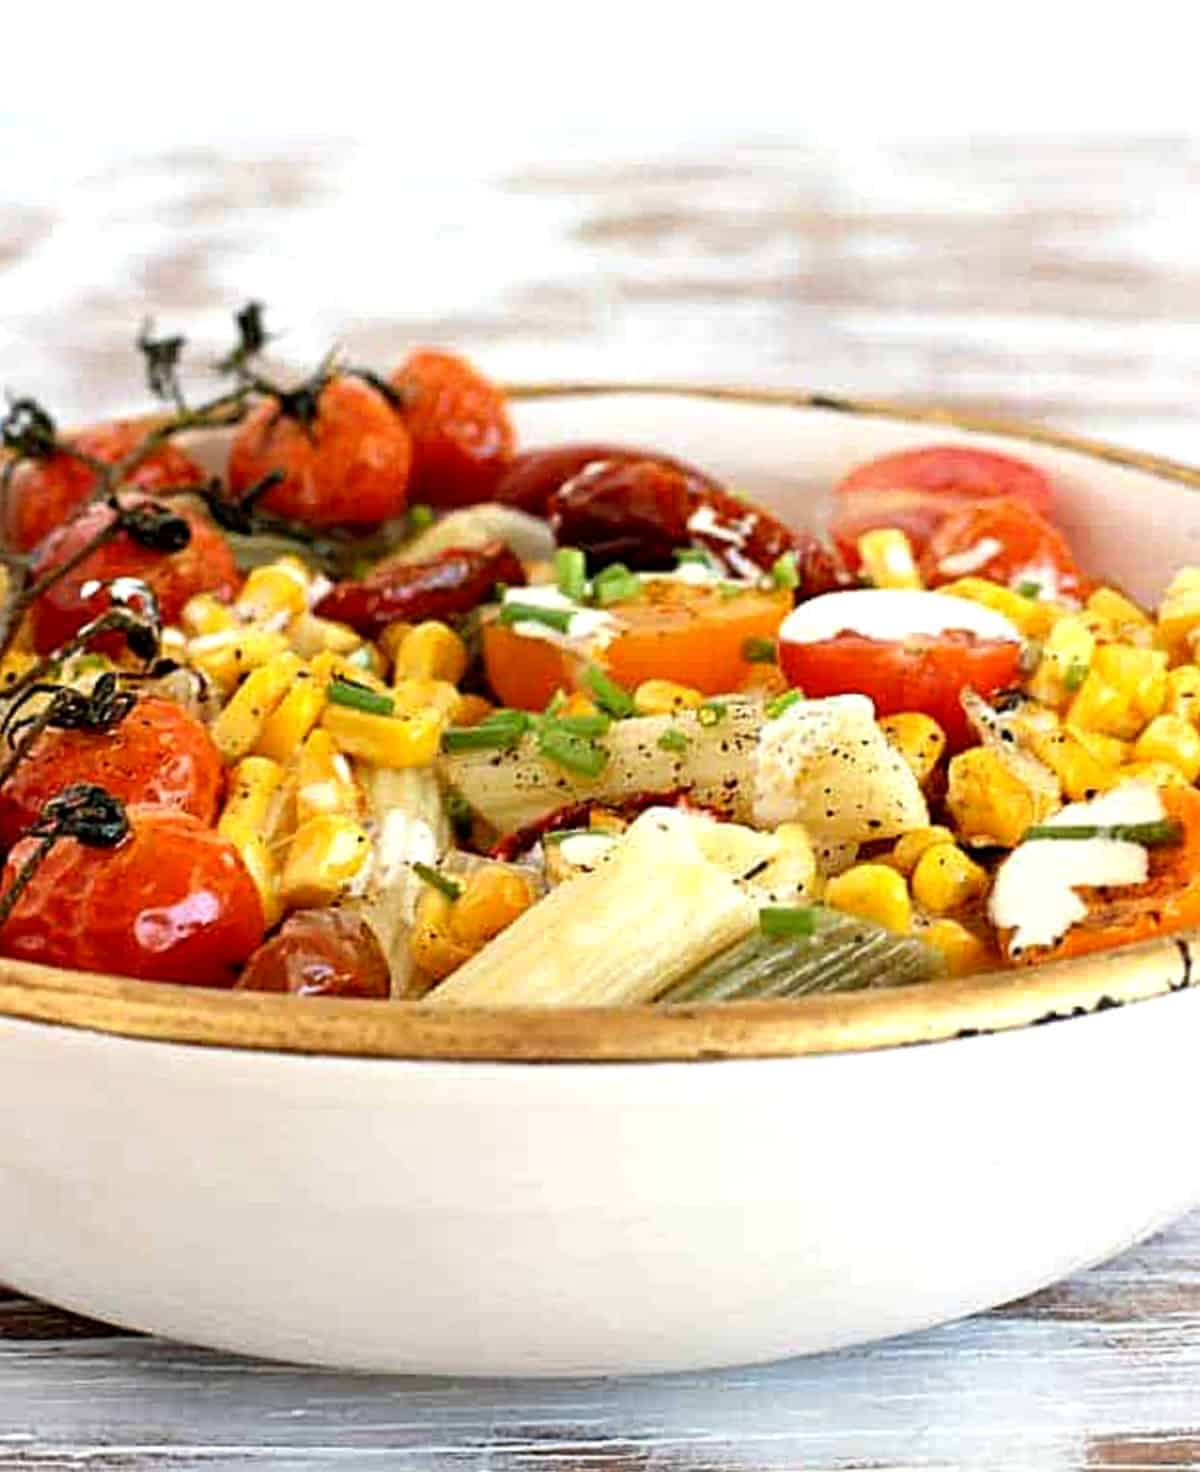 Front view of pasta plate with gold rim, mound of penne, tomatoes, corn